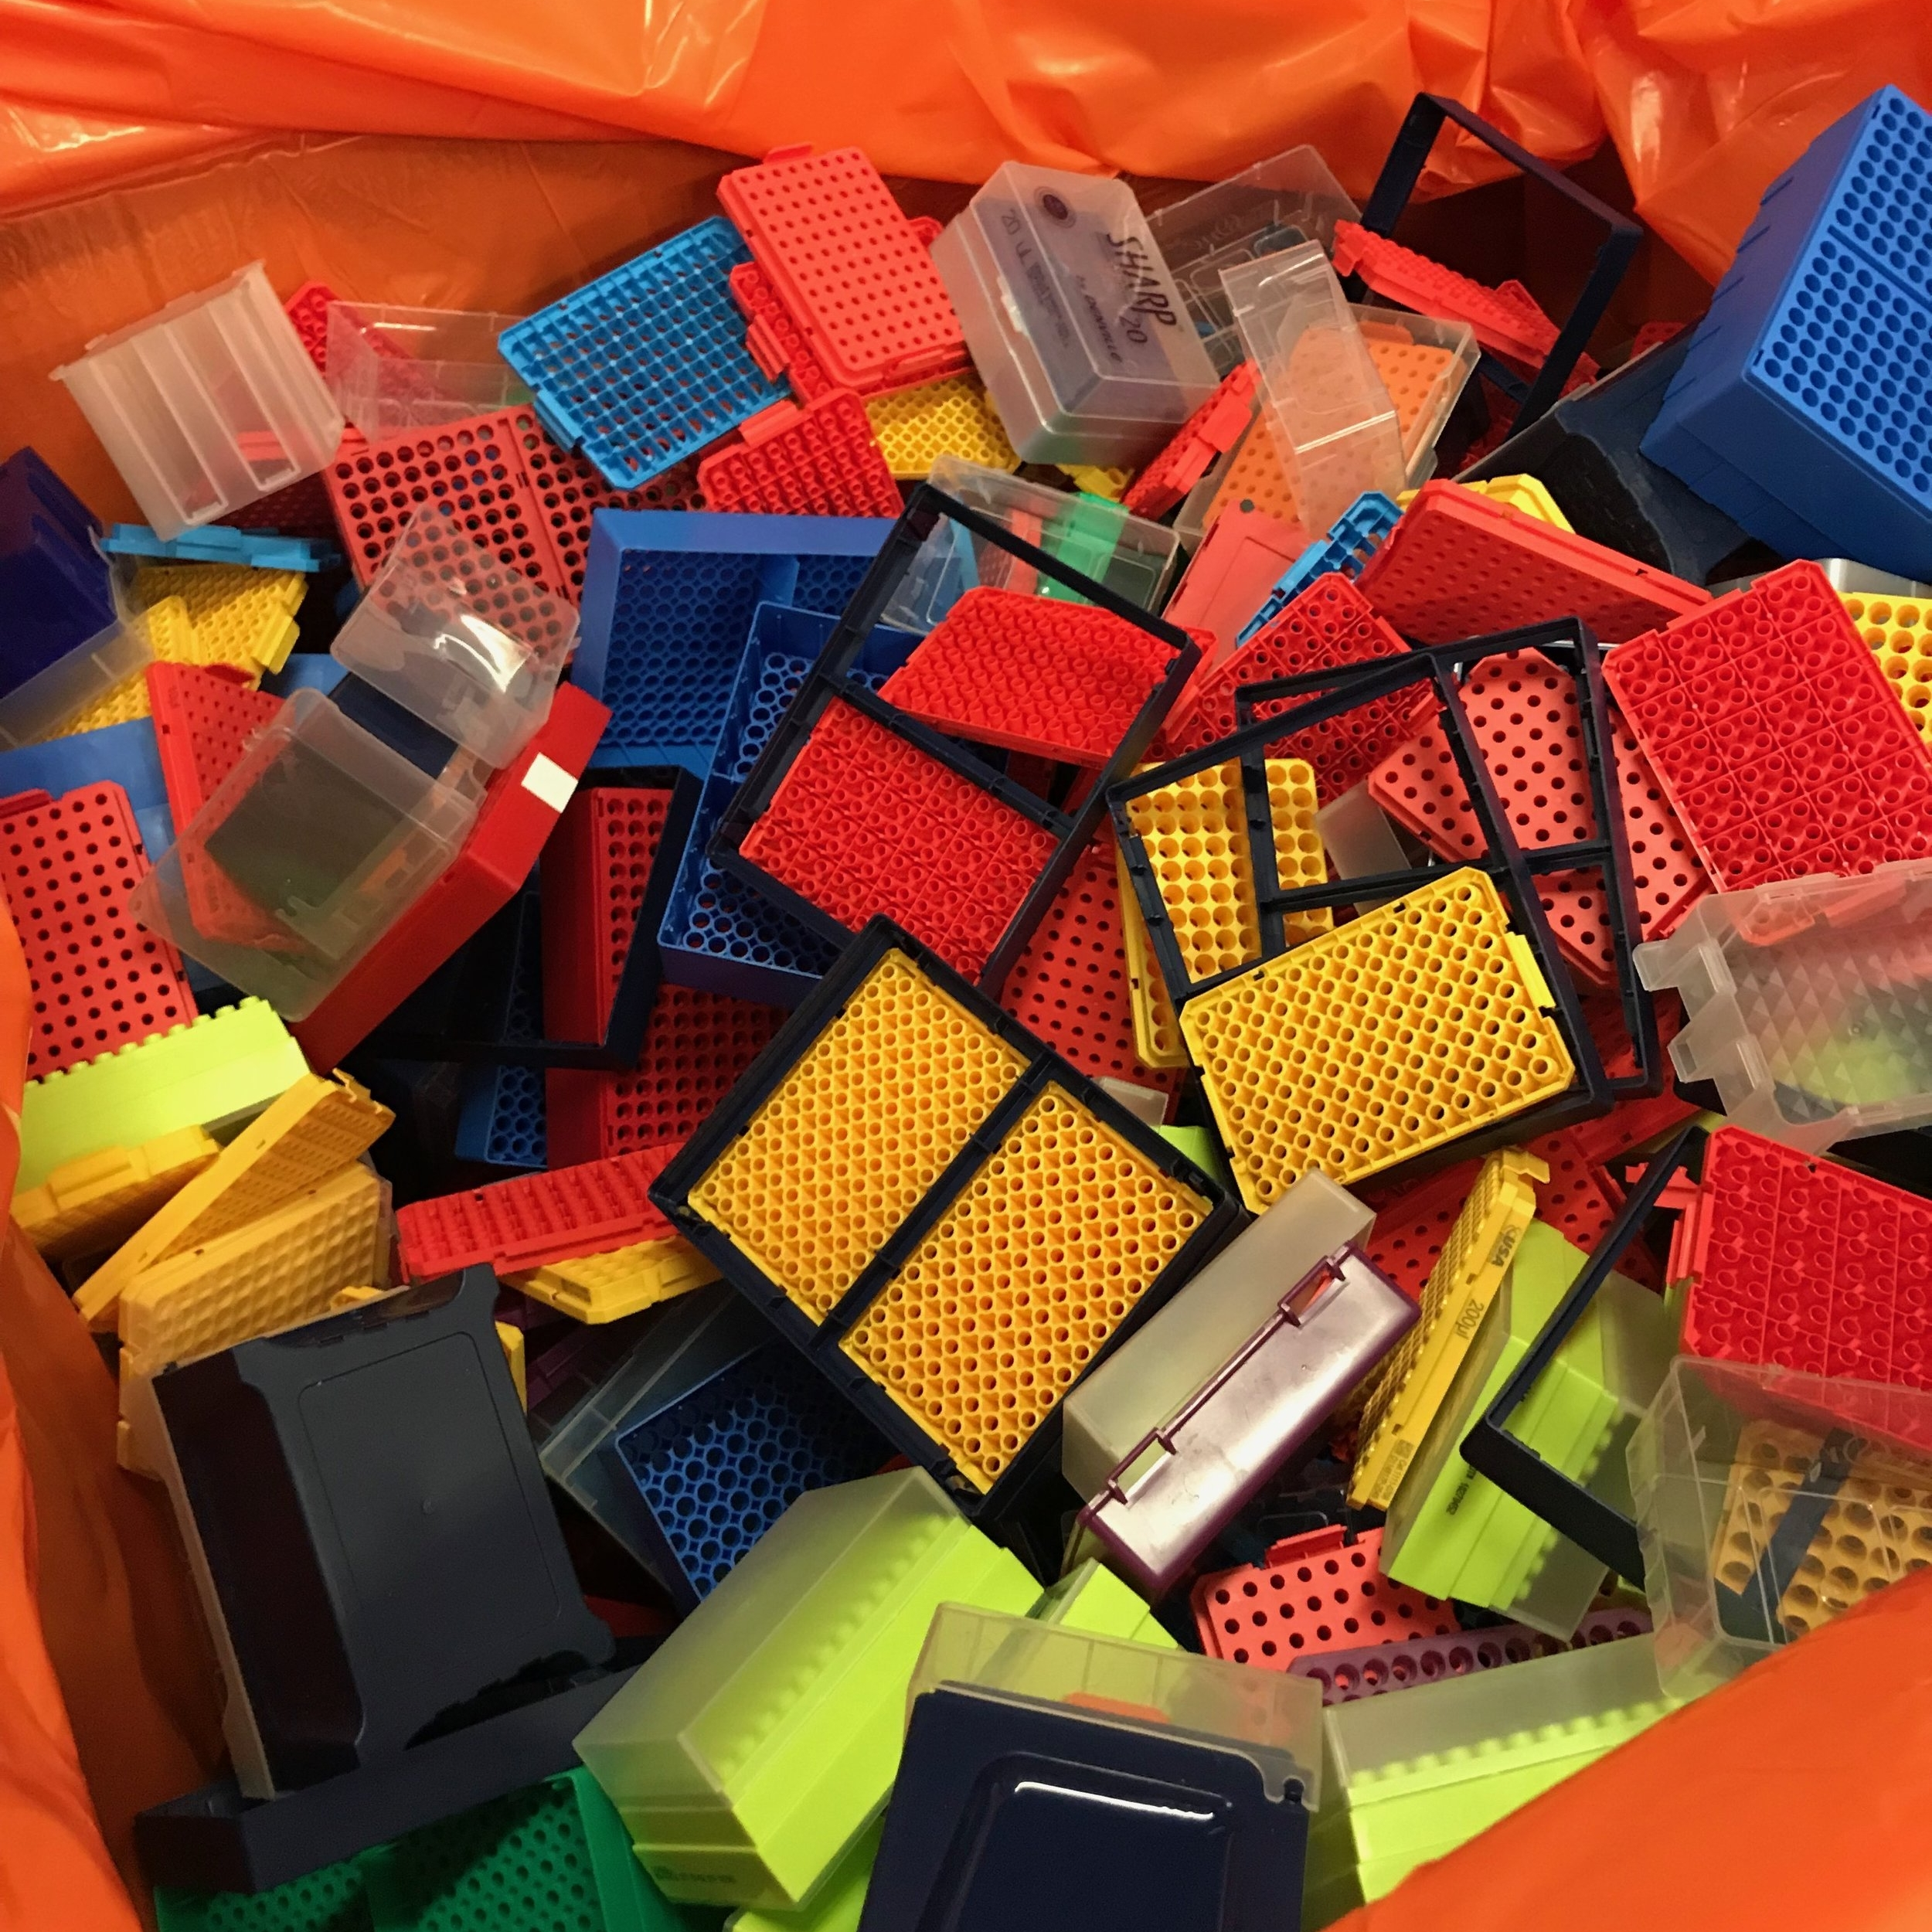 A recent waste audit at MIT found that OVER 80% of the plastic waste produced by laboratories are SINGLE-USE PIPETTE TIP BOXES!!!